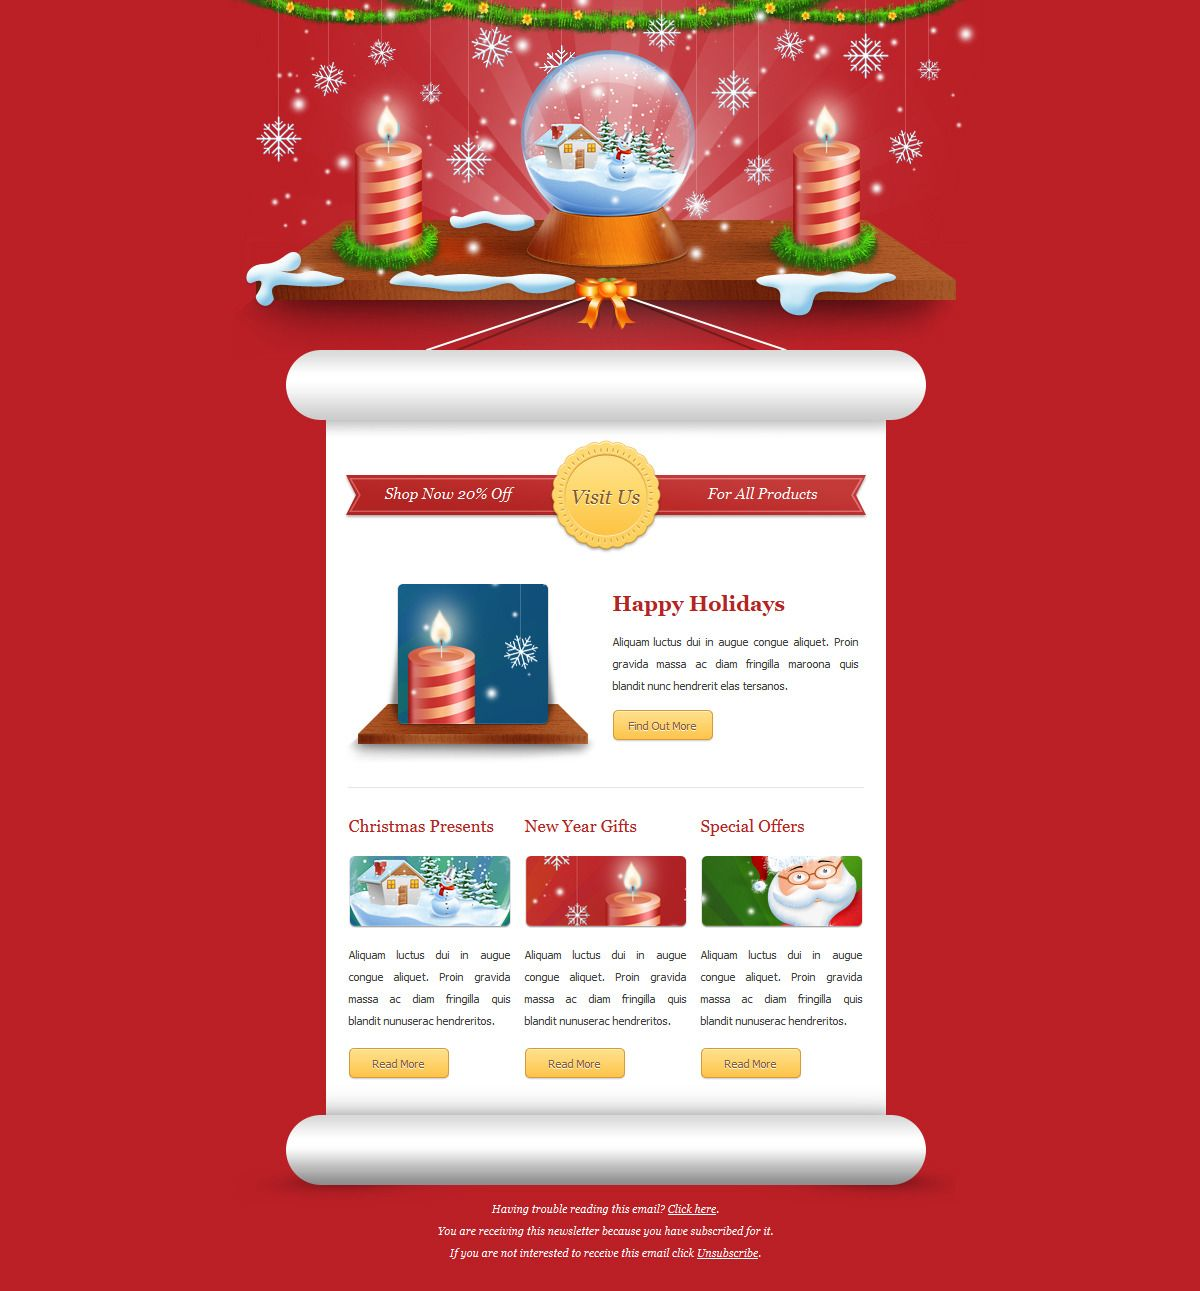 B2b Email Examples Email Newsletter Template Newsletter Templates Christmas Holidays